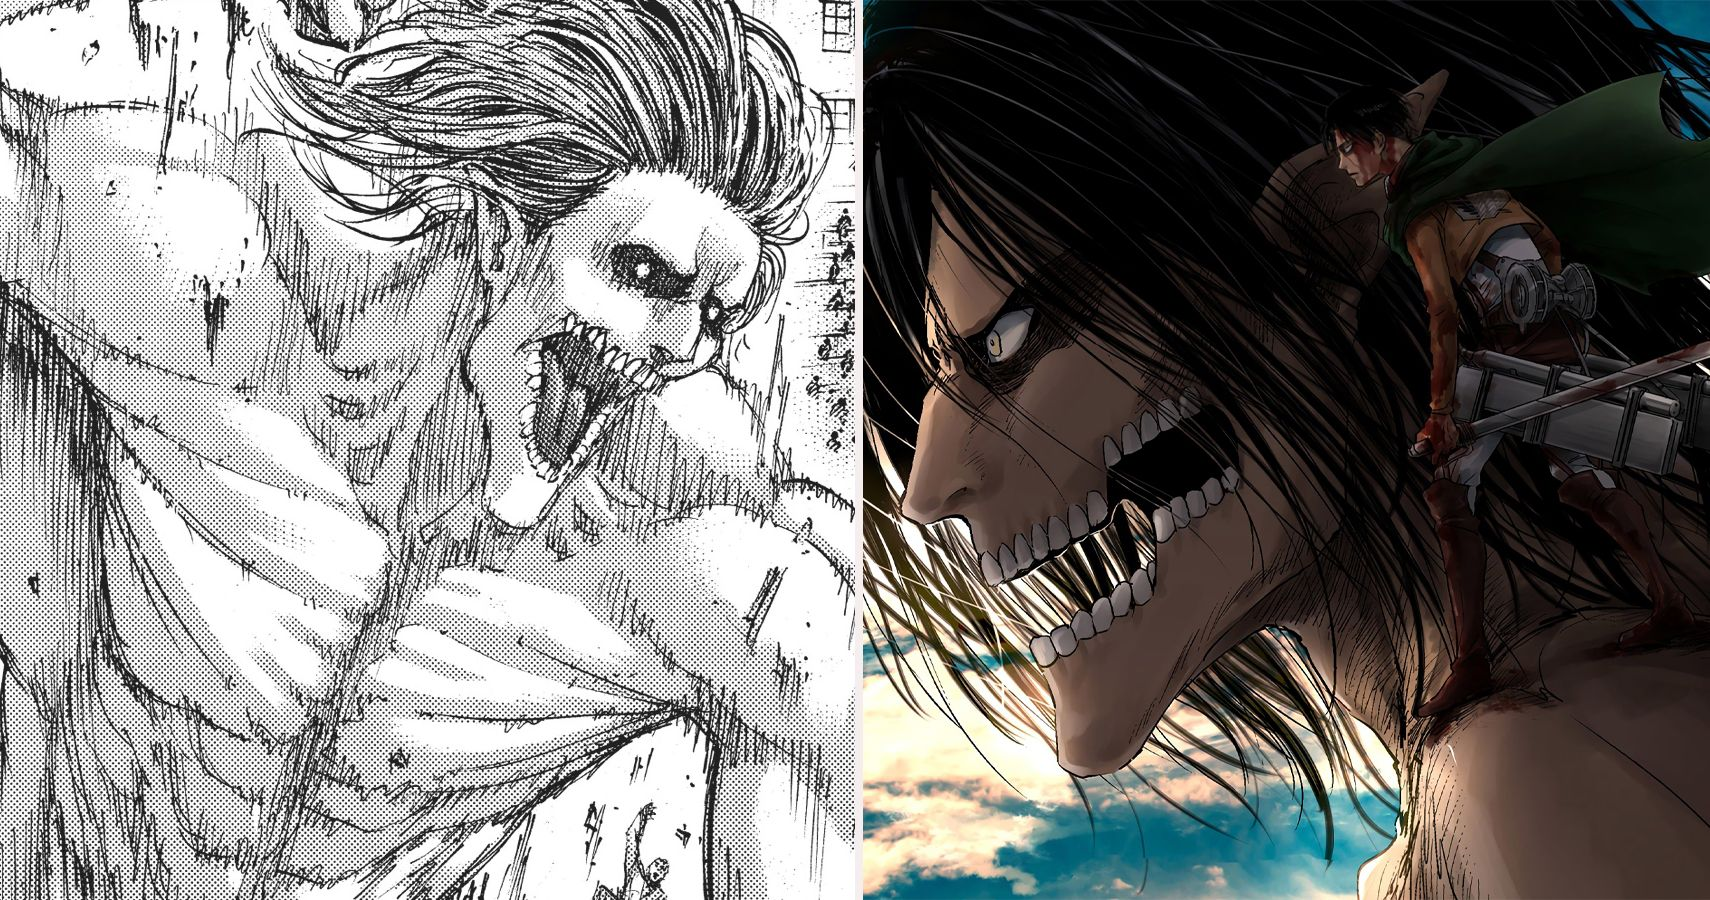 Attack On Titan 5 Things In The Manga That Are Better Than The Anime 5 Things The Anime Does Better